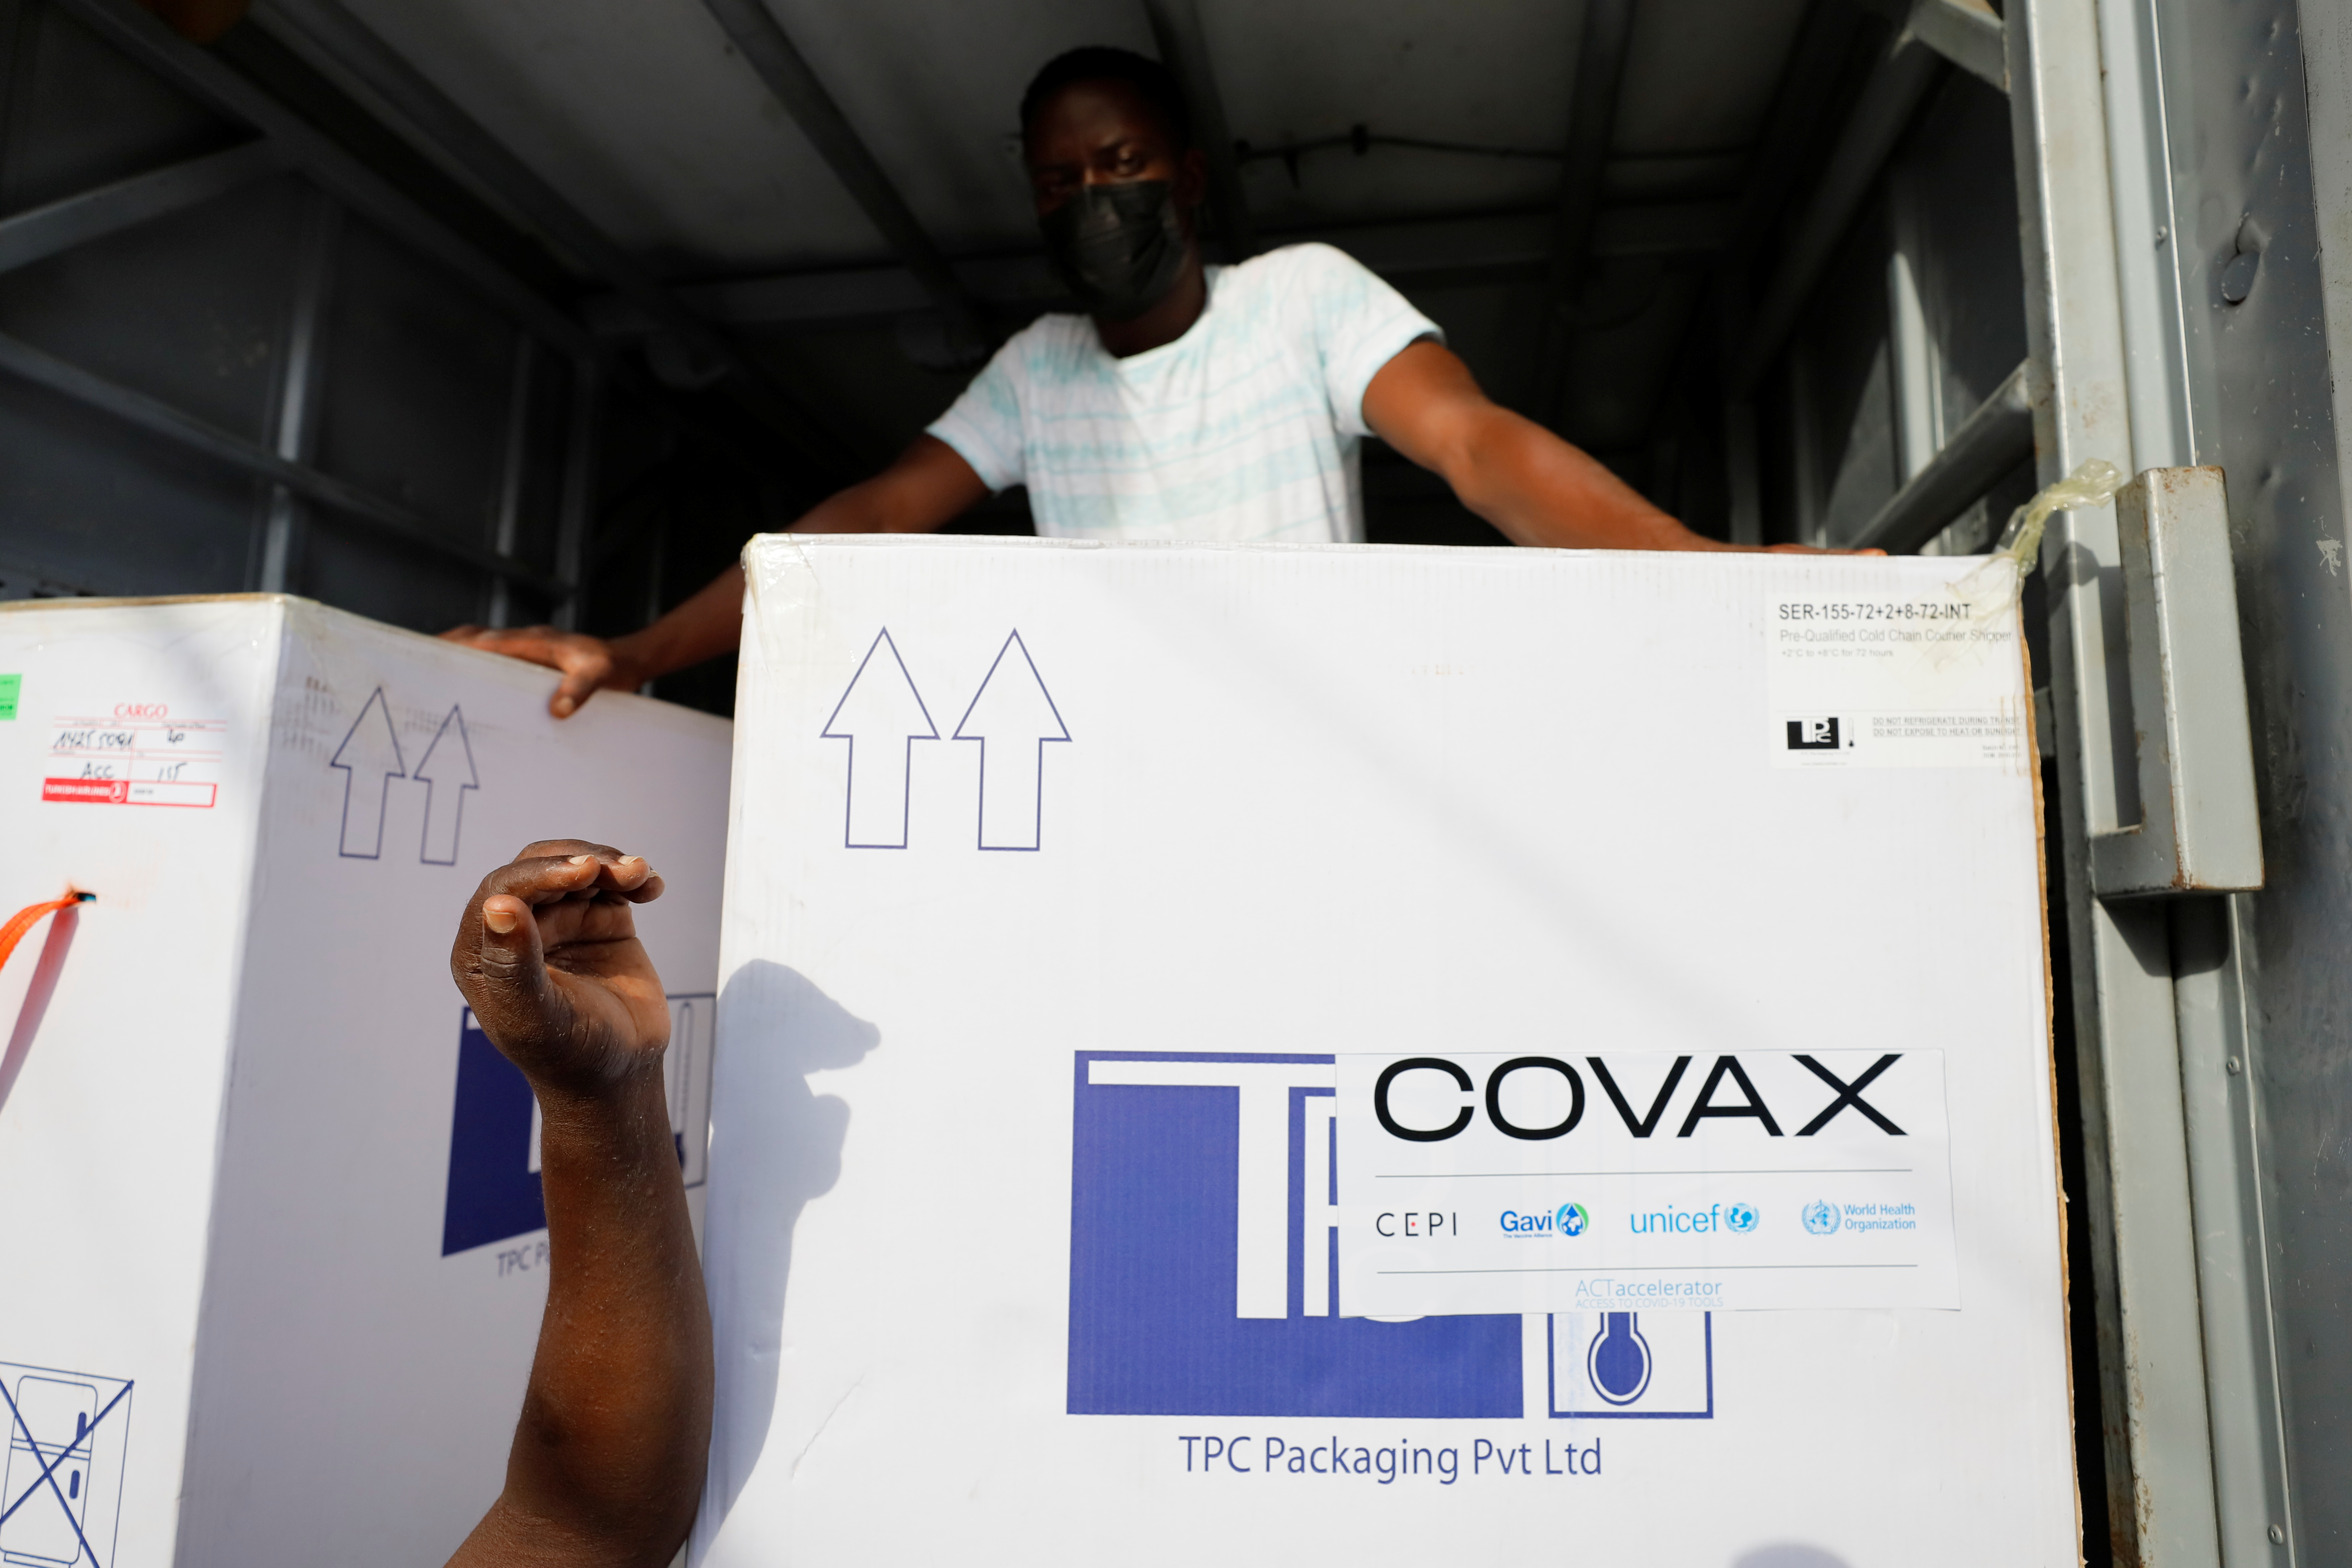 Boxes of Oxford/AstraZeneca coronavirus disease (COVID-19) vaccines, redeployed from the Democratic Republic of Congo, arrive at a cold storage facility in Accra, Ghana, May 7, 2021. REUTERS/Francis Kokoroko